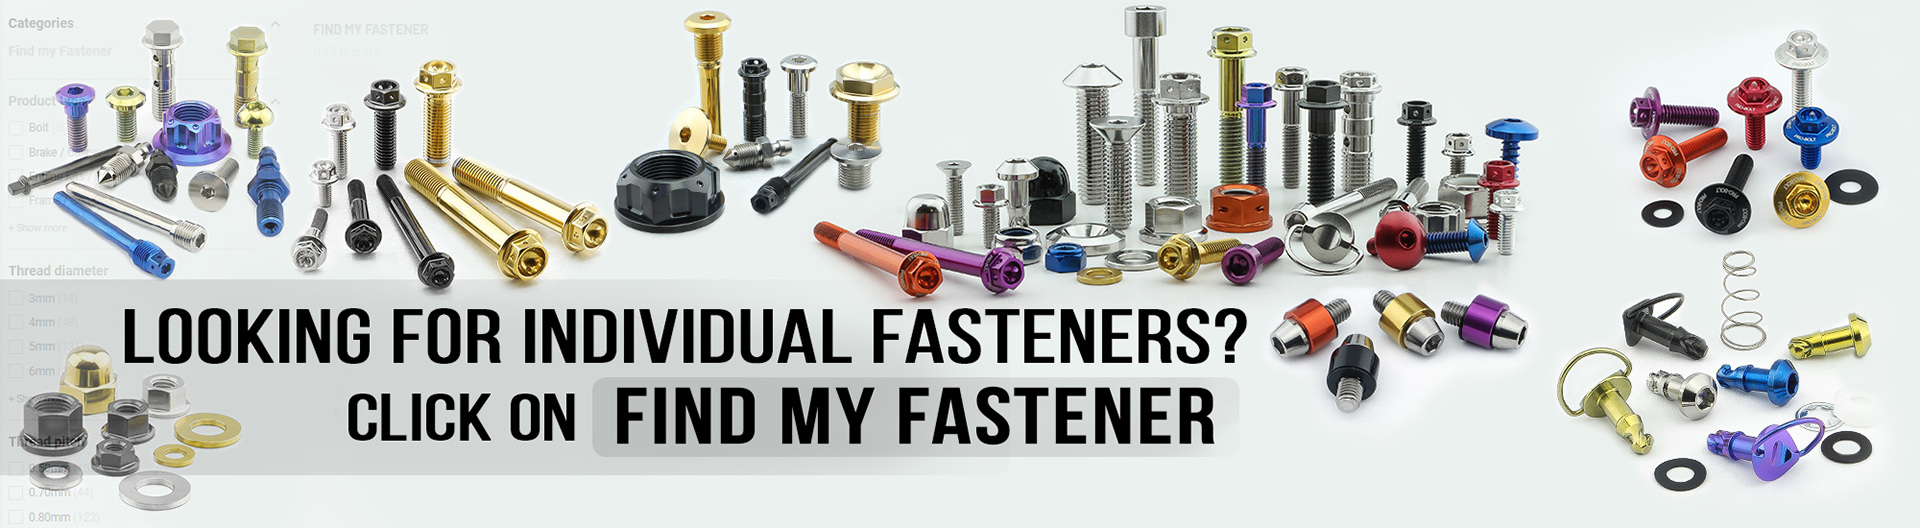 Easily find the Fastener for your needs with our search tool